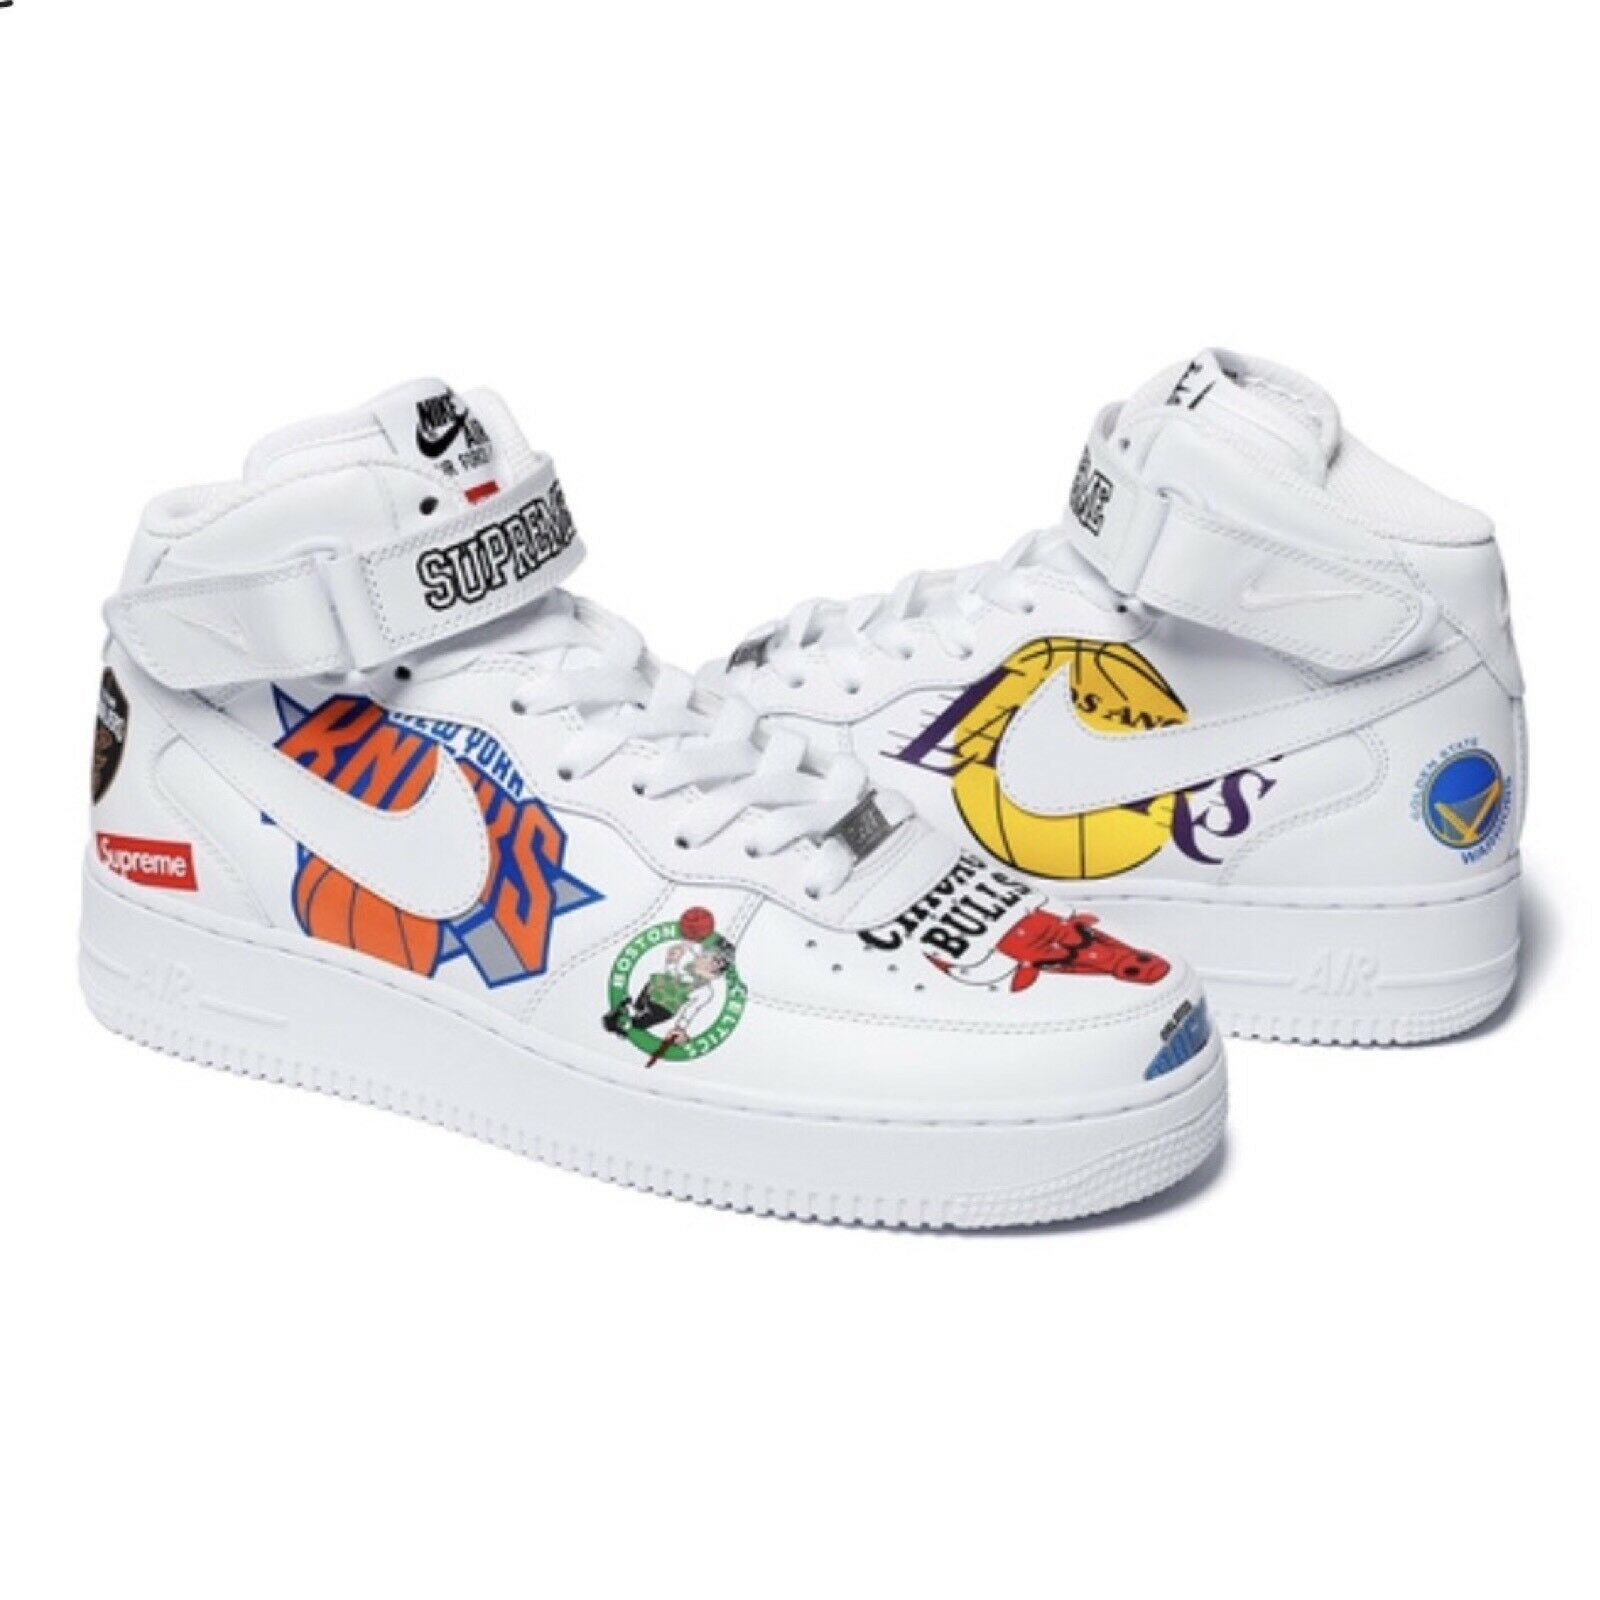 Supreme X X X NBA X Nike shoes Air Force 1 Mid White Size 12 CONFIRMED c9542e